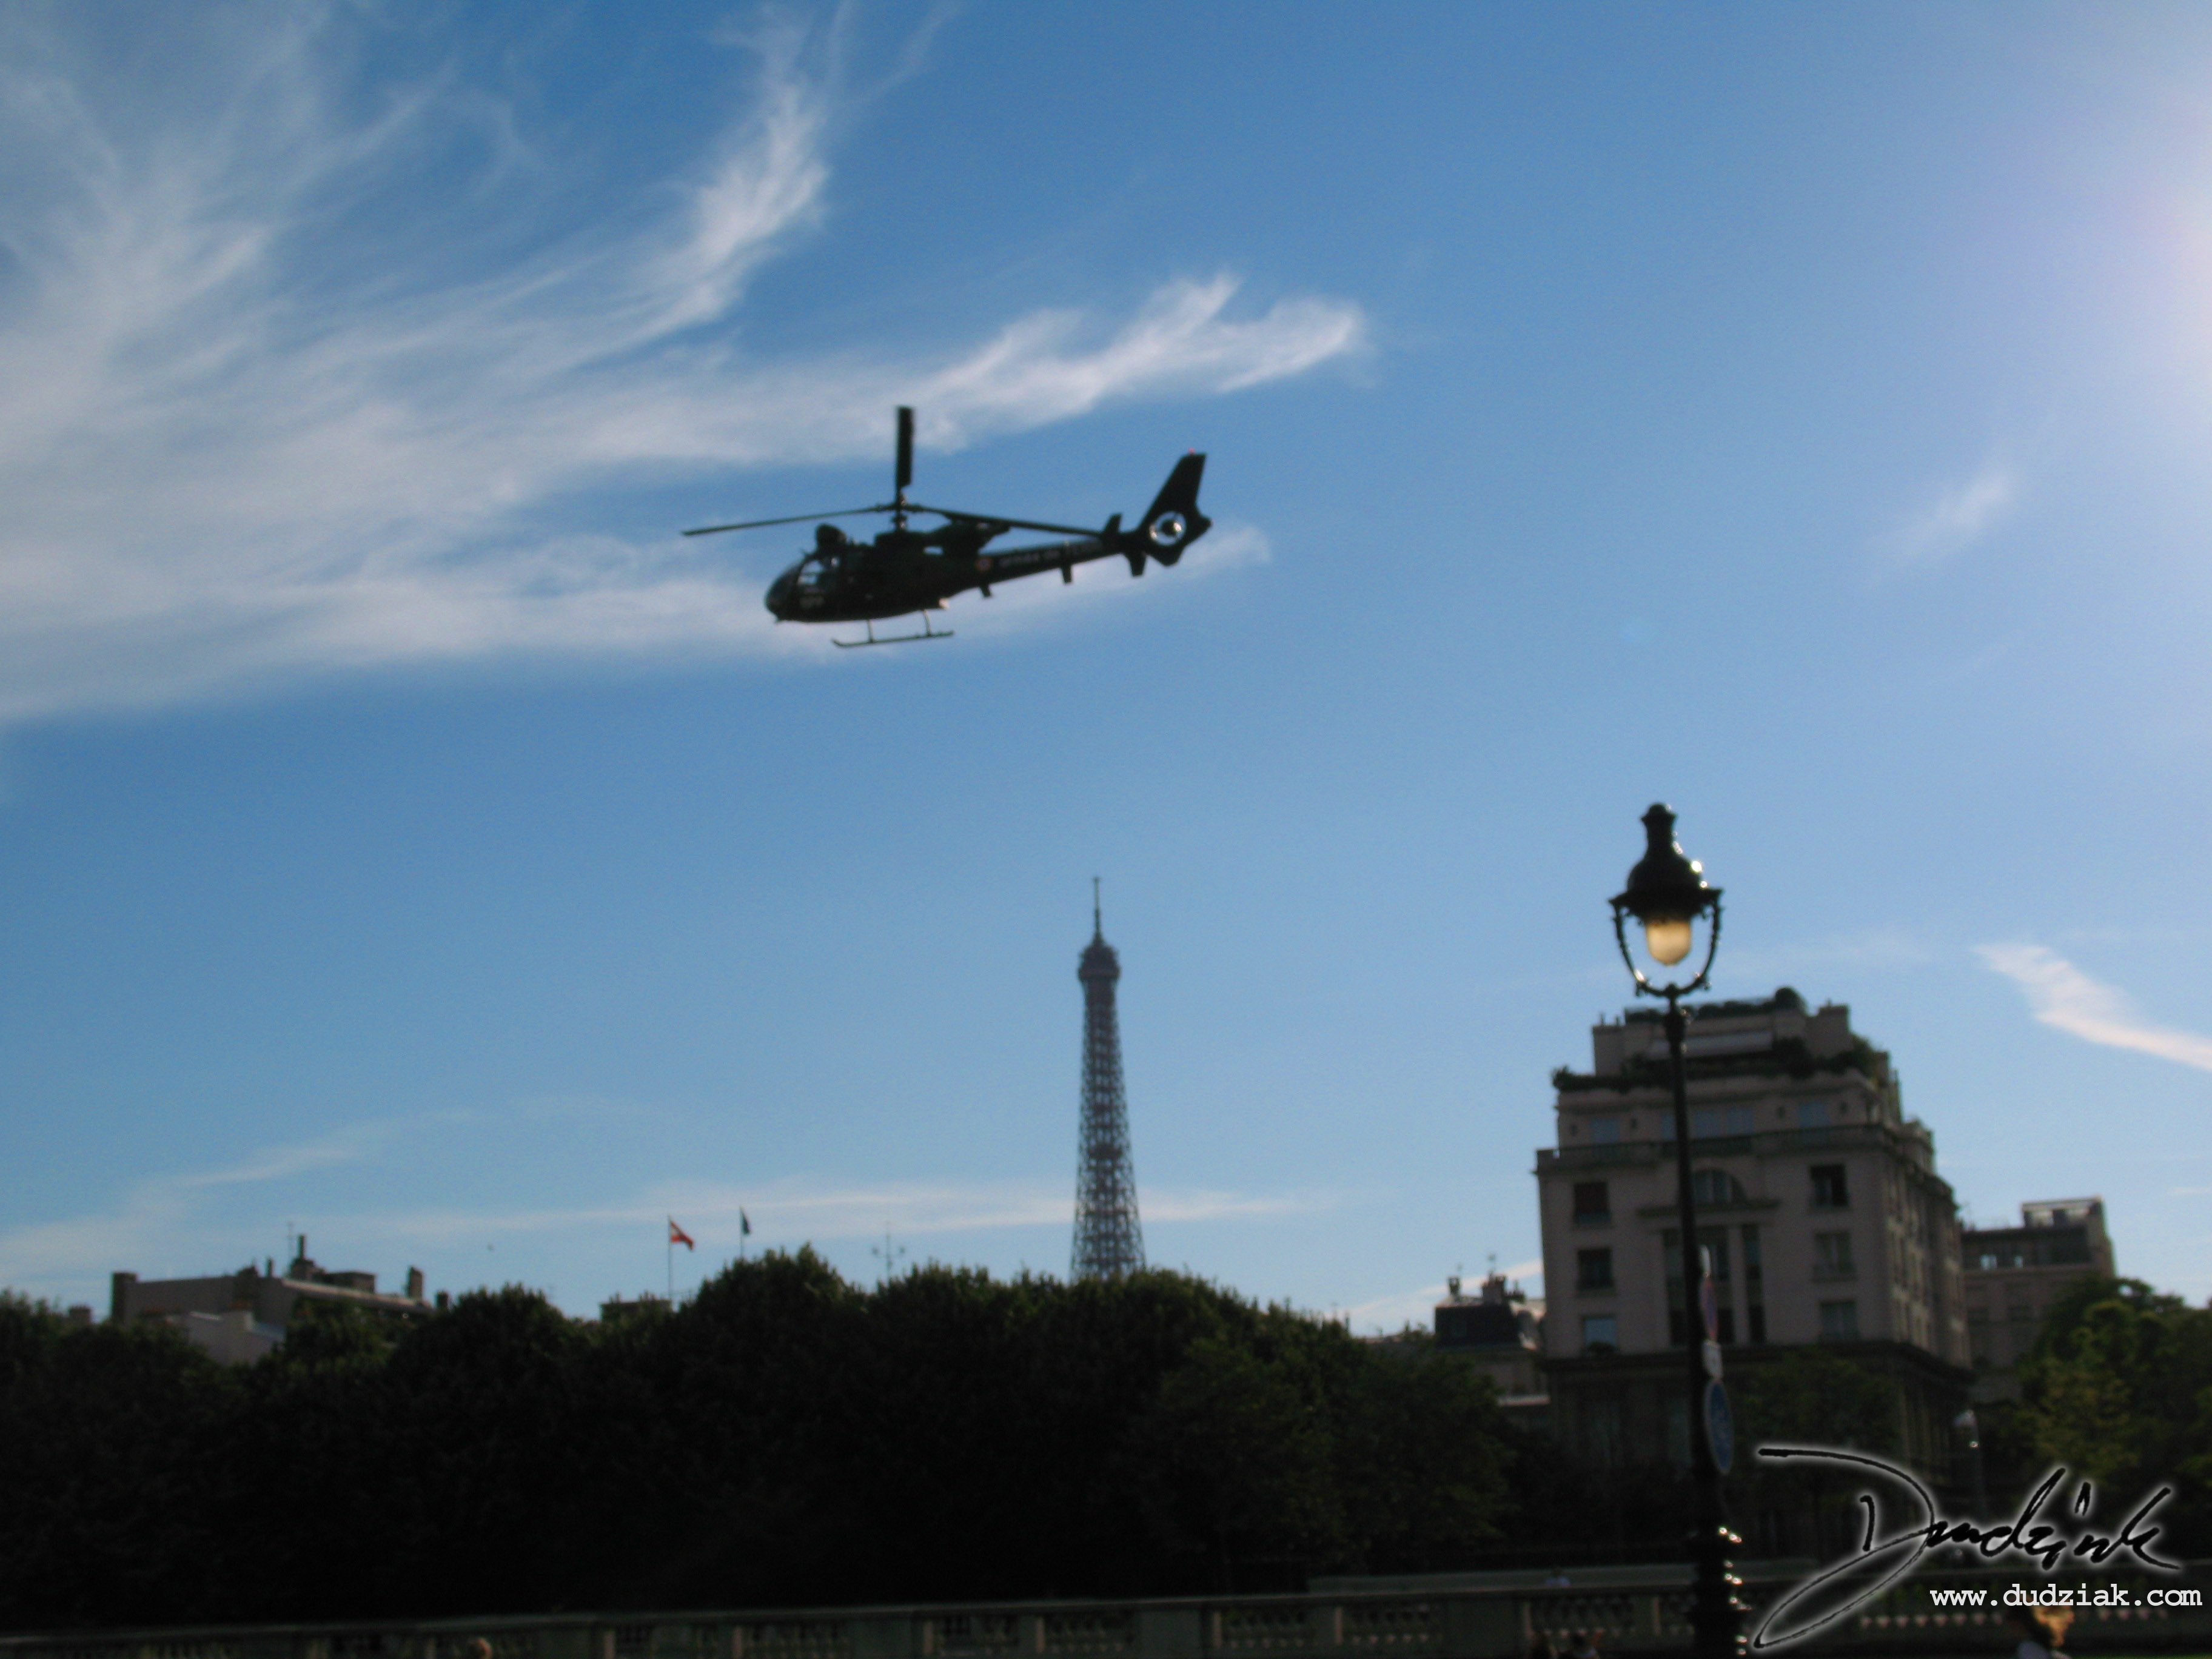 Eiffel Tower,  French Military,  Paris,  Quatorze Juillet,  Helicopter